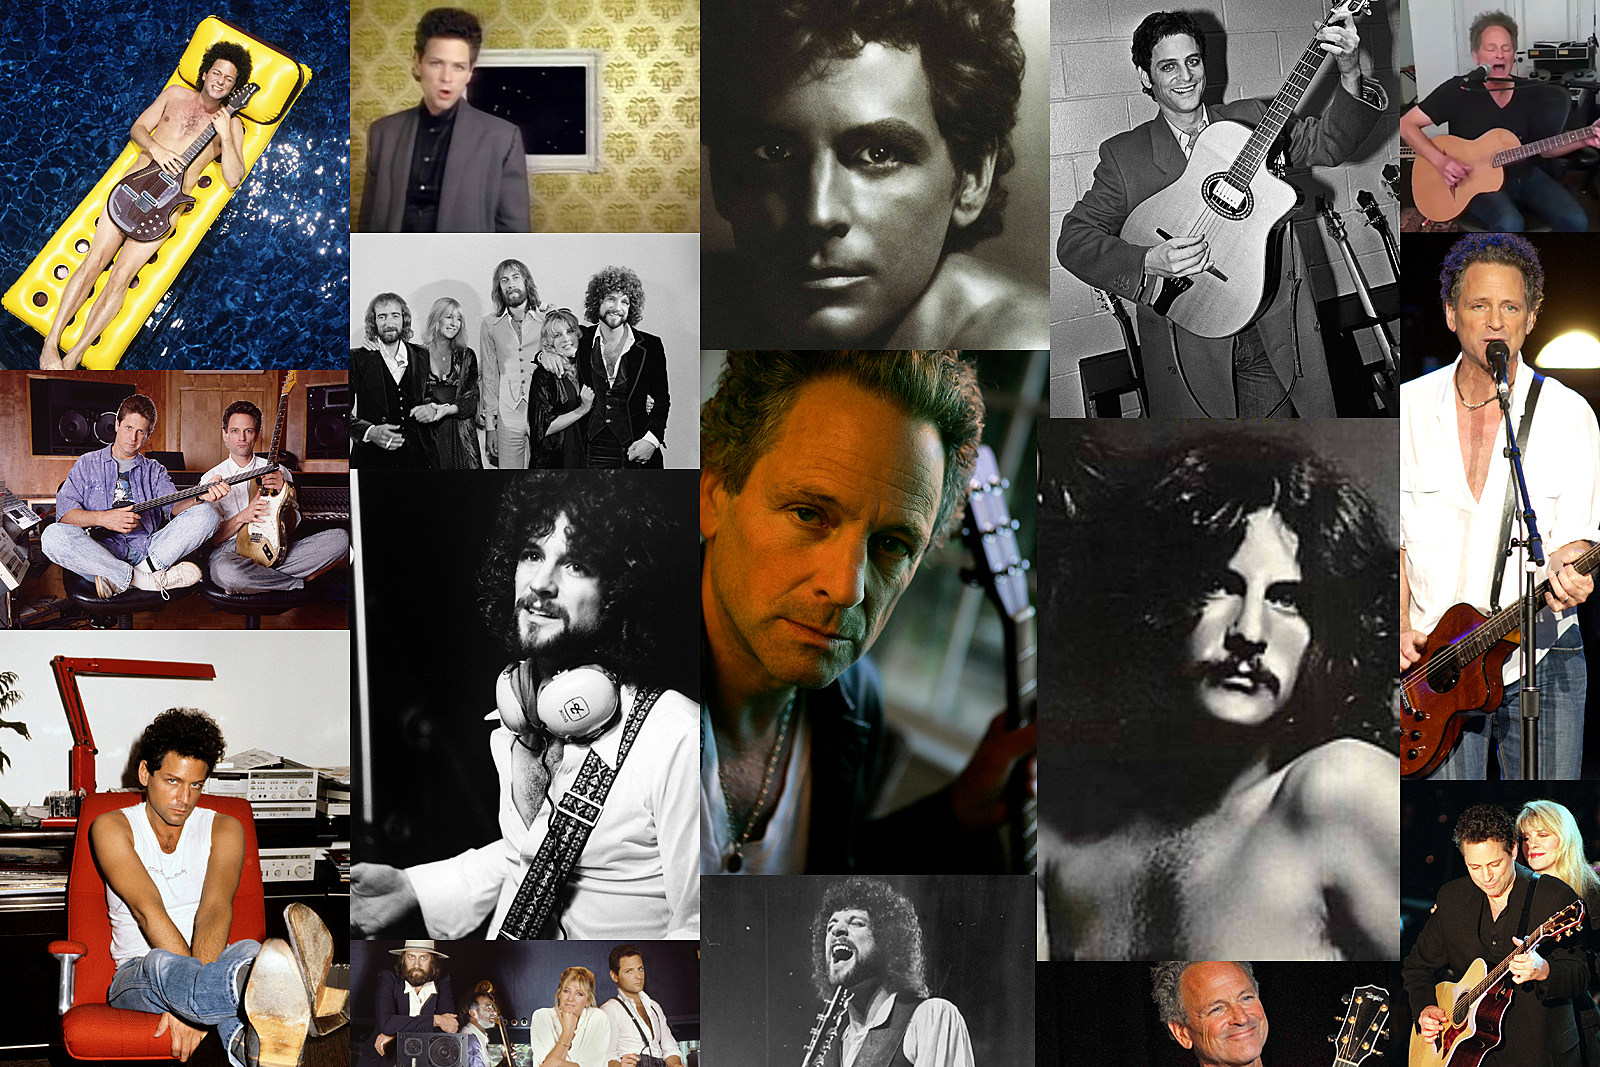 Lindsey Buckingham Year-by-Year: Photos 1974-2020